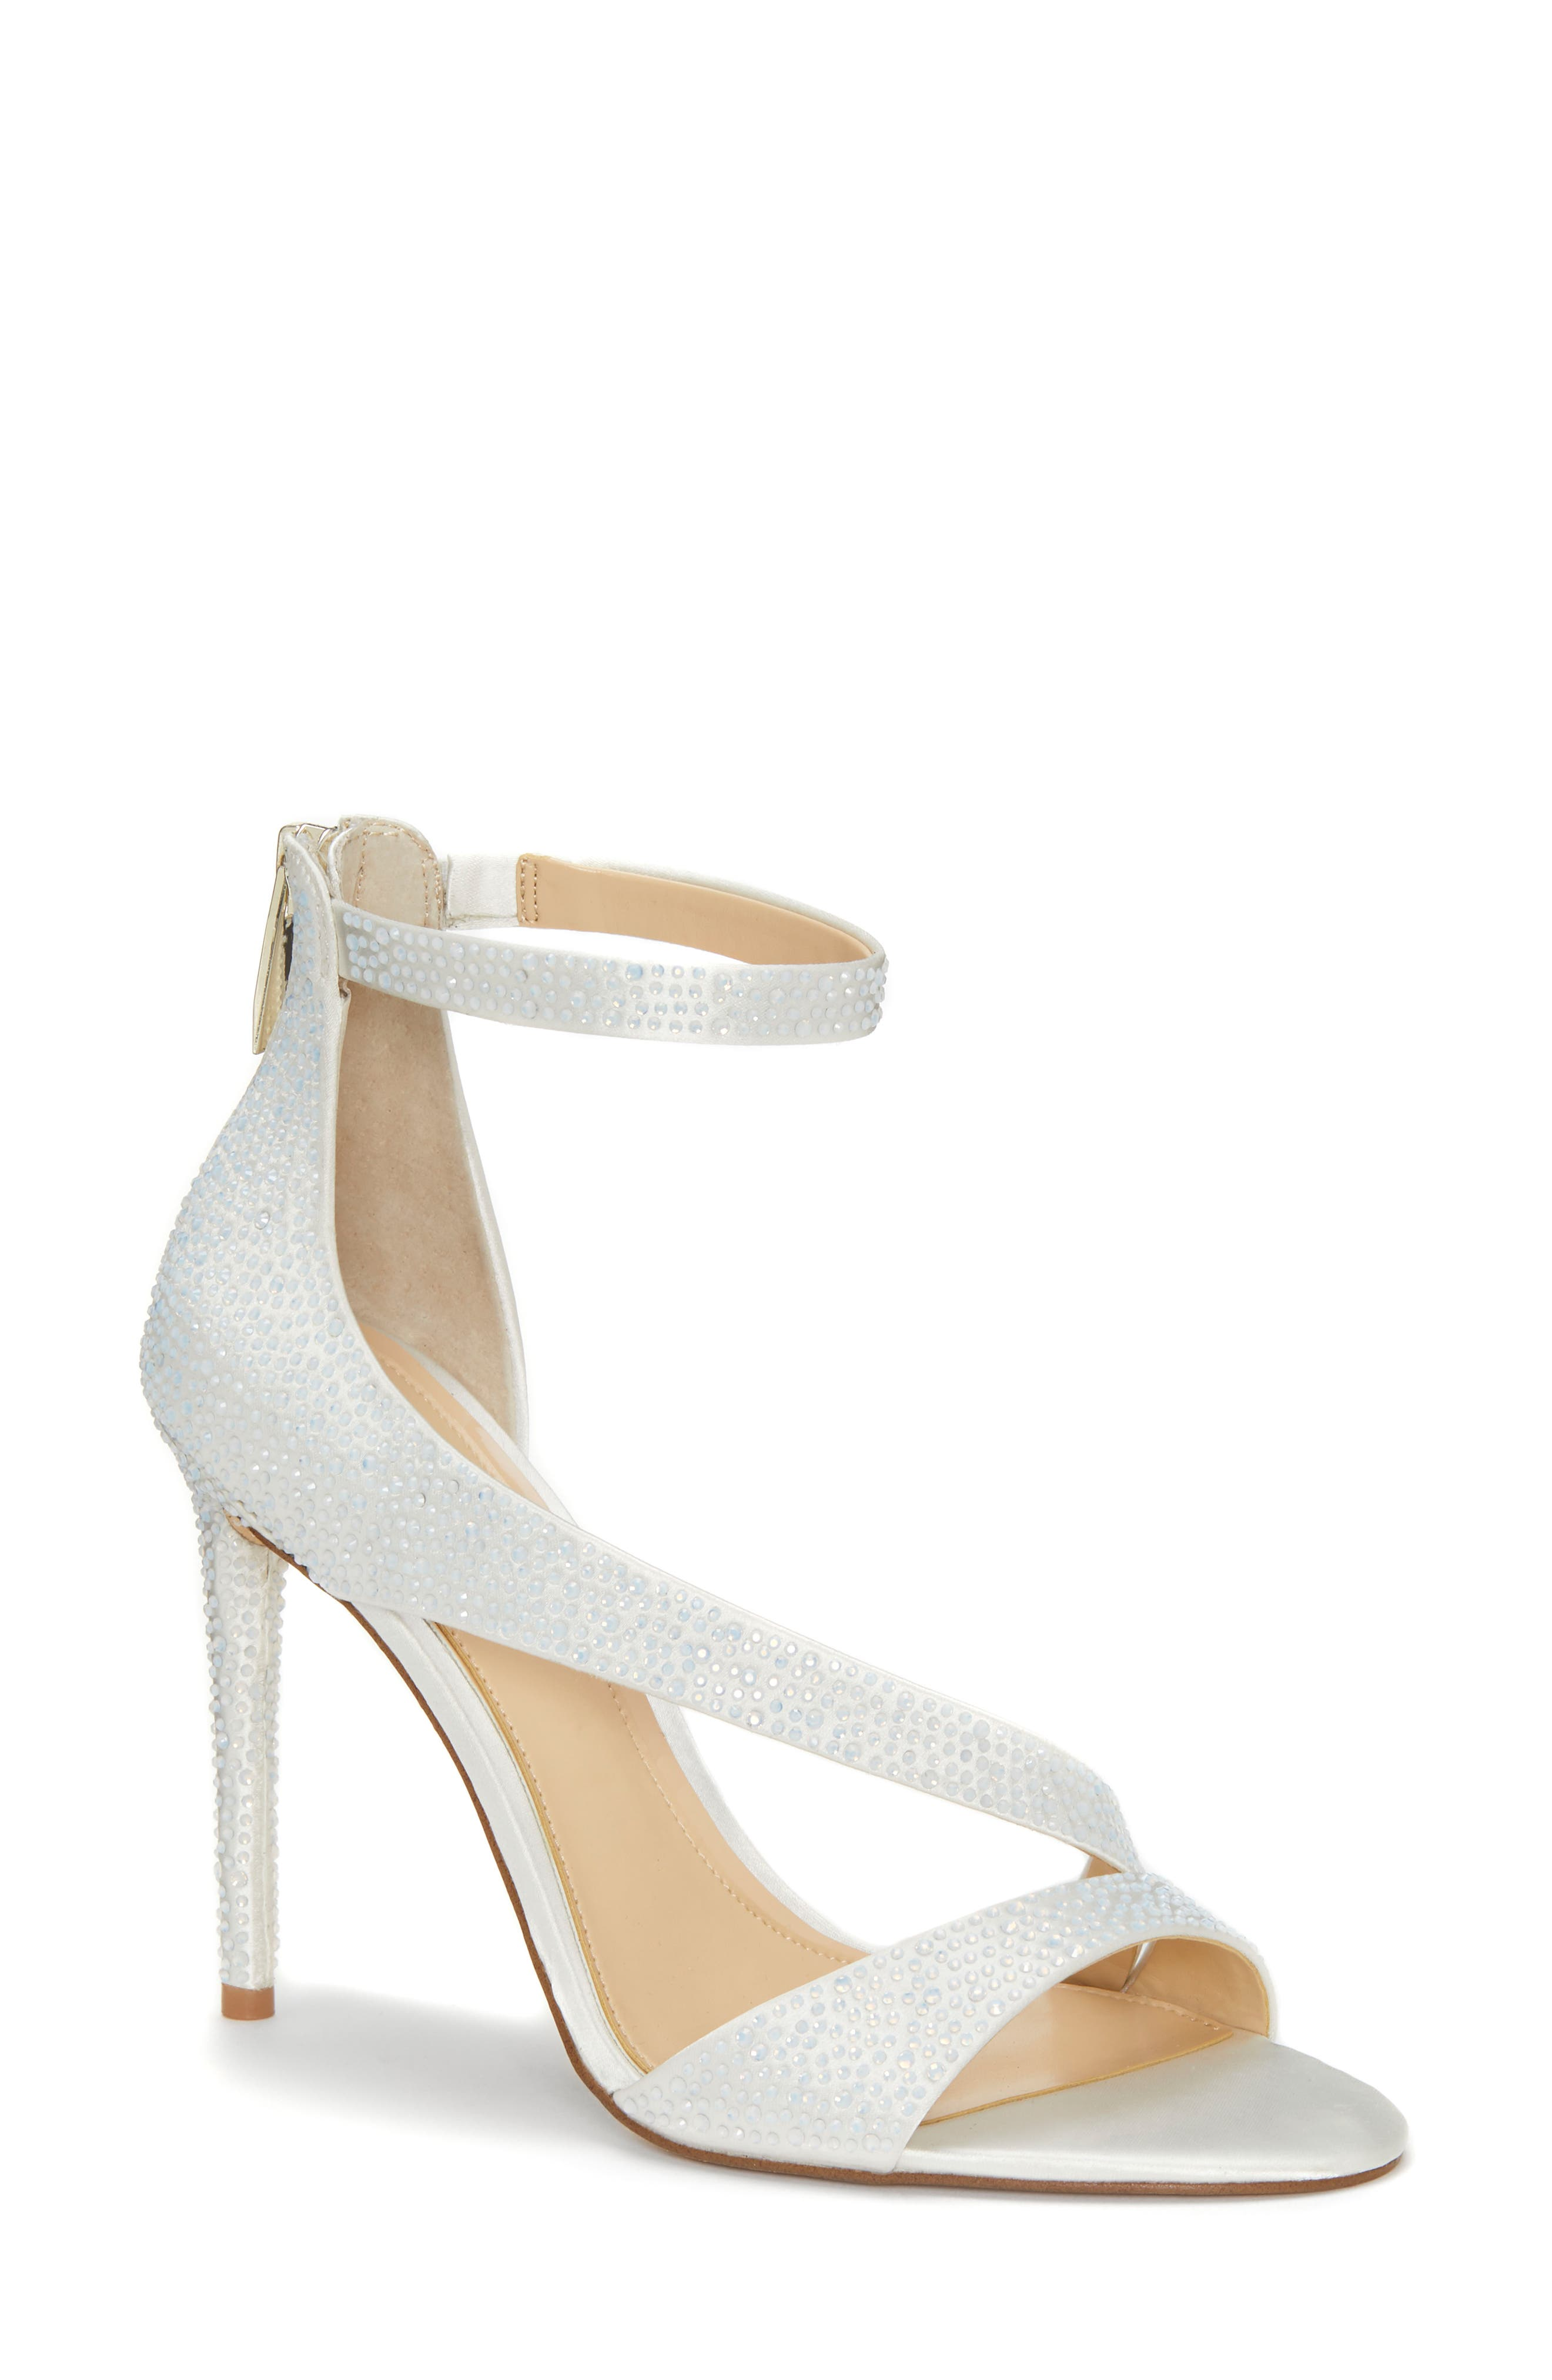 IMAGINE BY VINCE CAMUTO Floral Strappy Sandal, Main, color, PURE WHITE SATIN